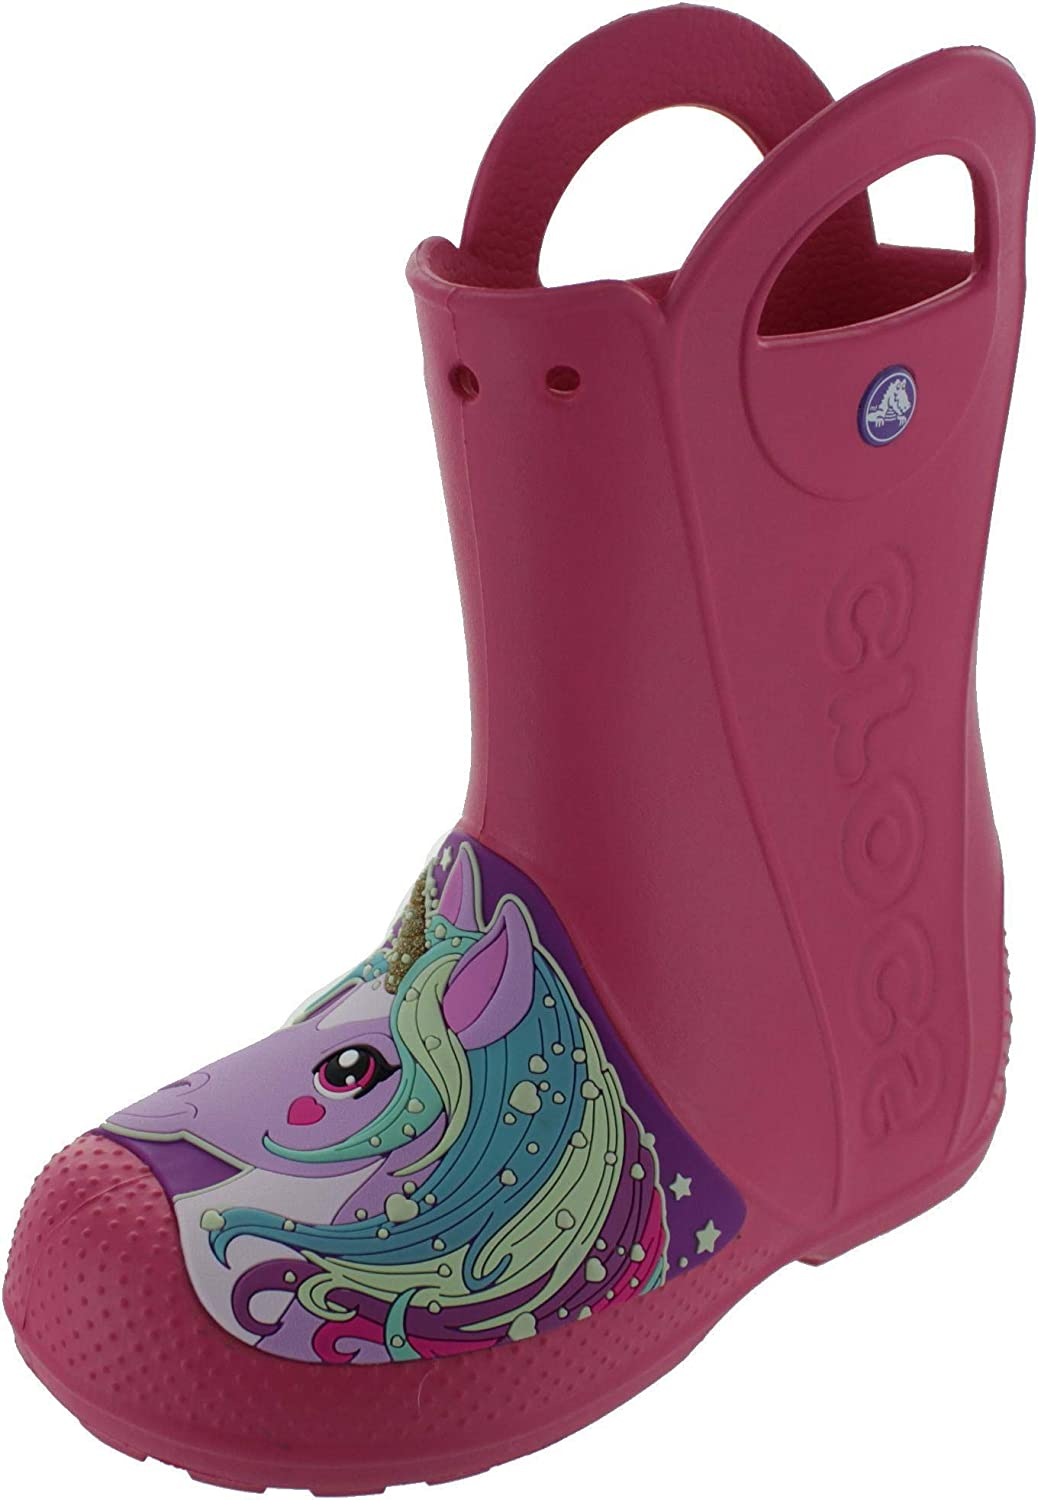 ee2e8d2db Crocs Girl s Creature Rain Boot Wellington Shoes  Amazon.co.uk  Shoes   Bags